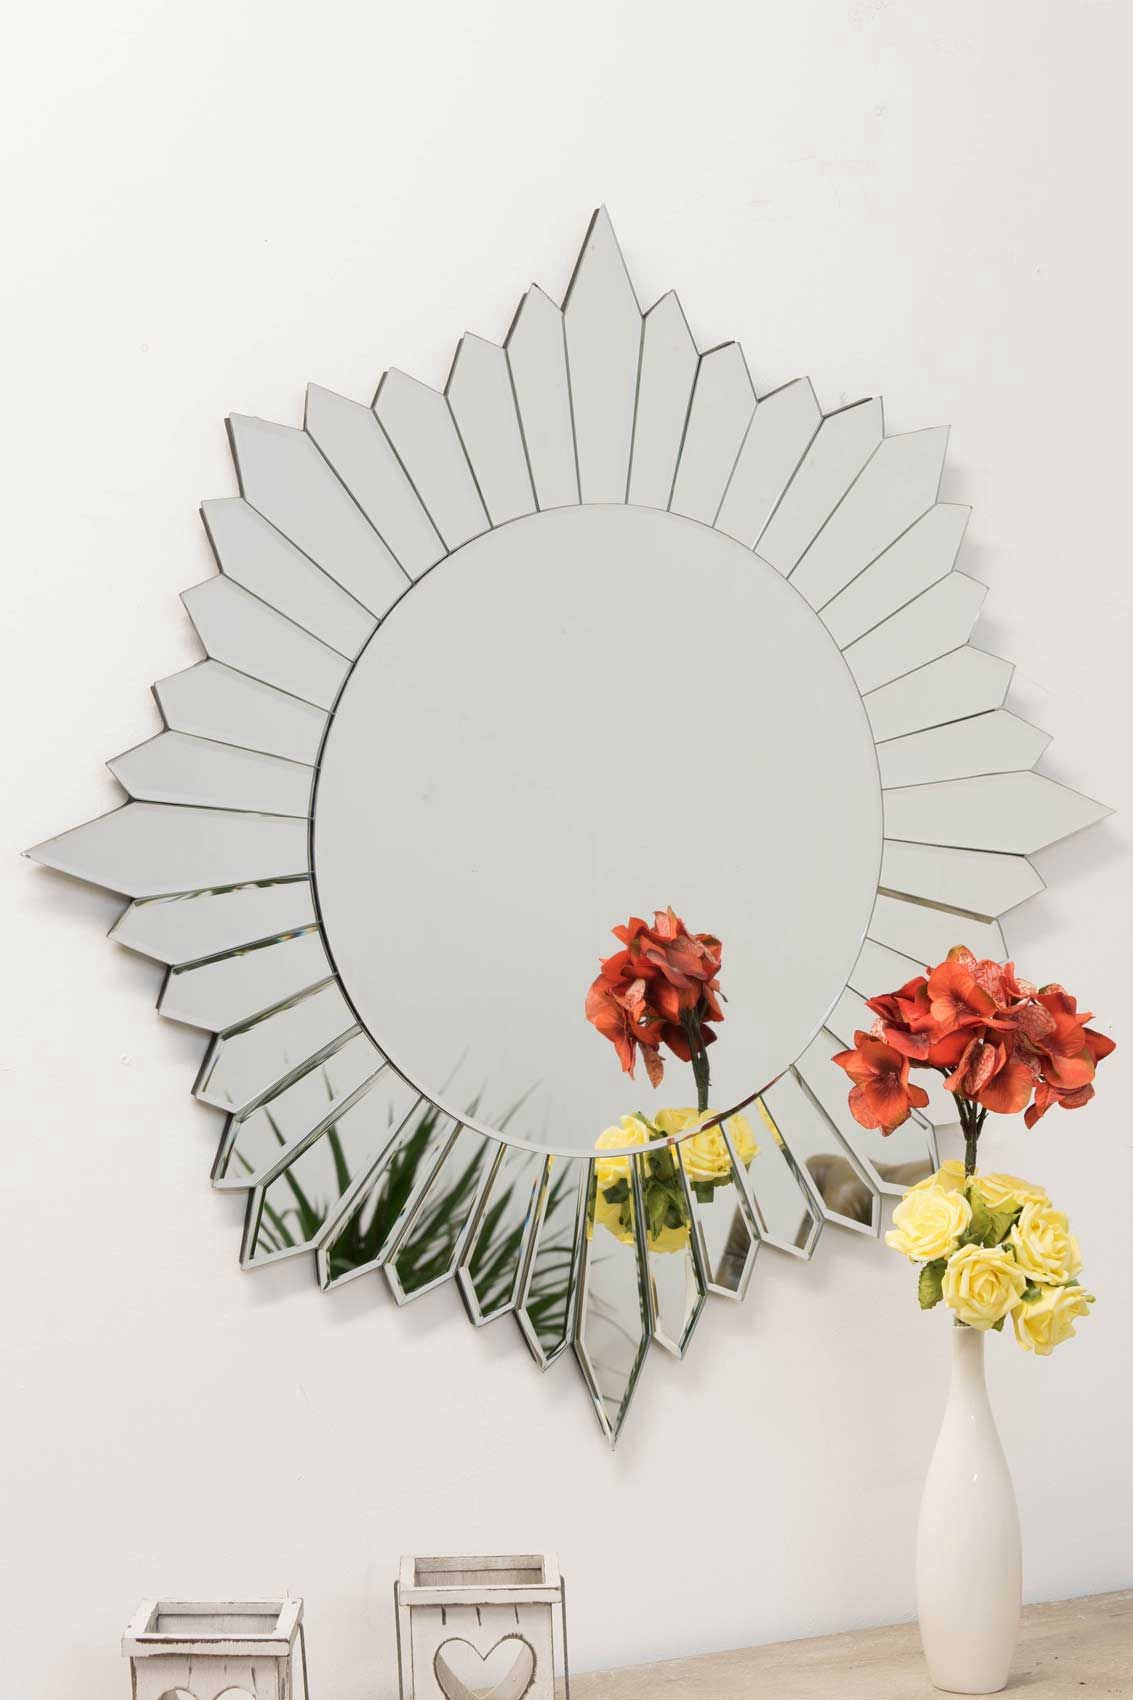 Shop Large Round Sunburst All Glass Mirror 80x80cm A Beautiful All